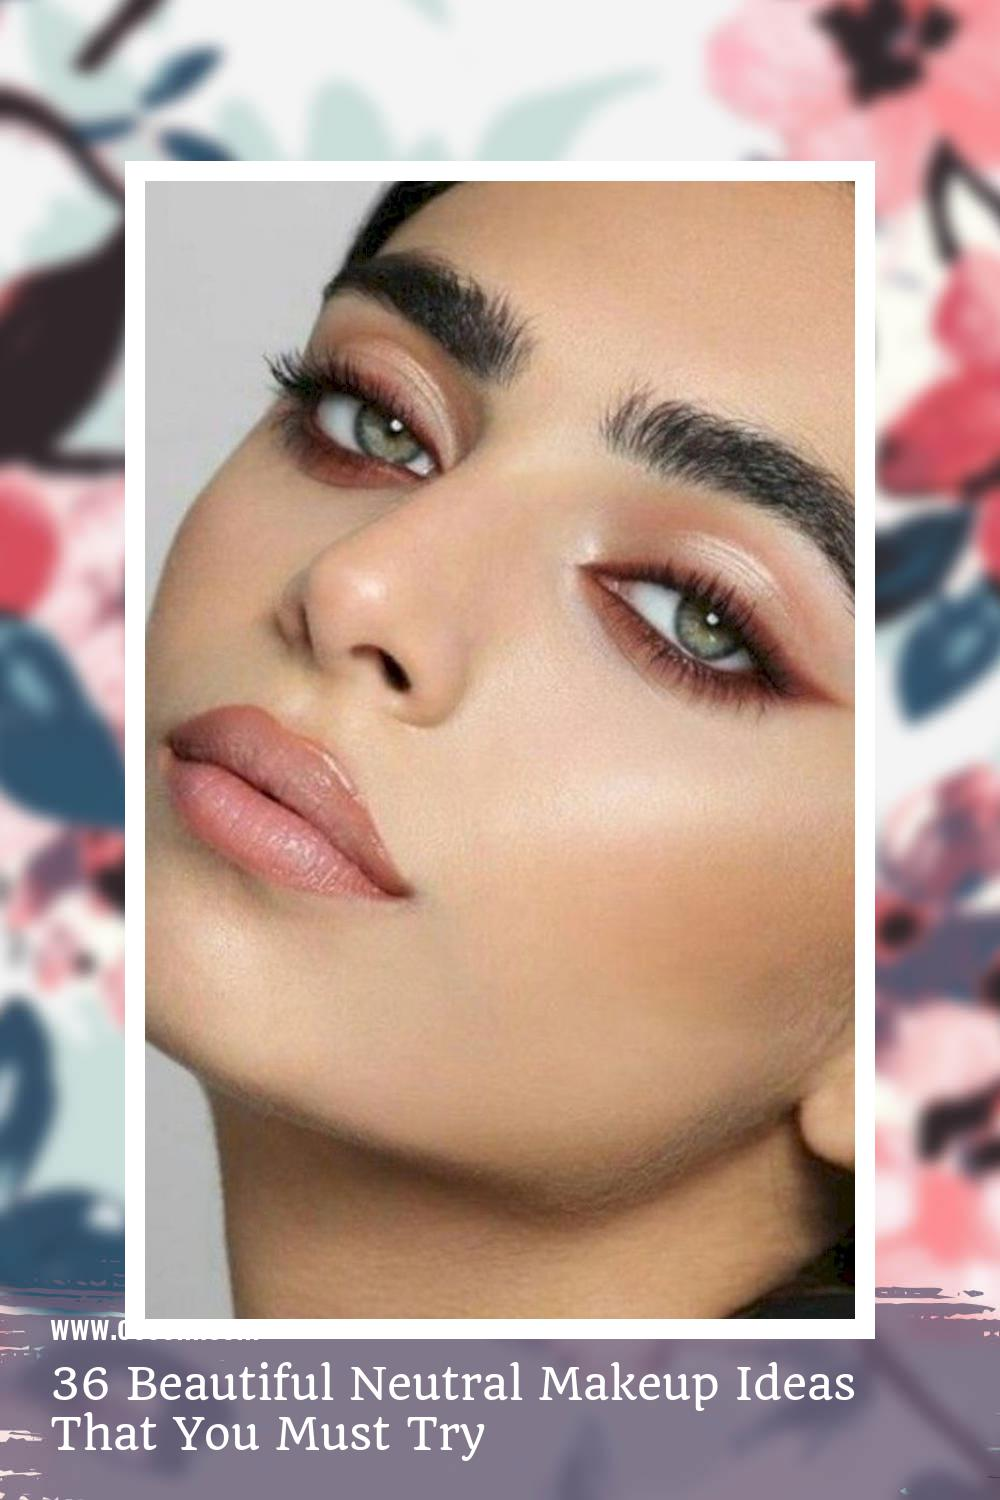 36 Beautiful Neutral Makeup Ideas That You Must Try 35